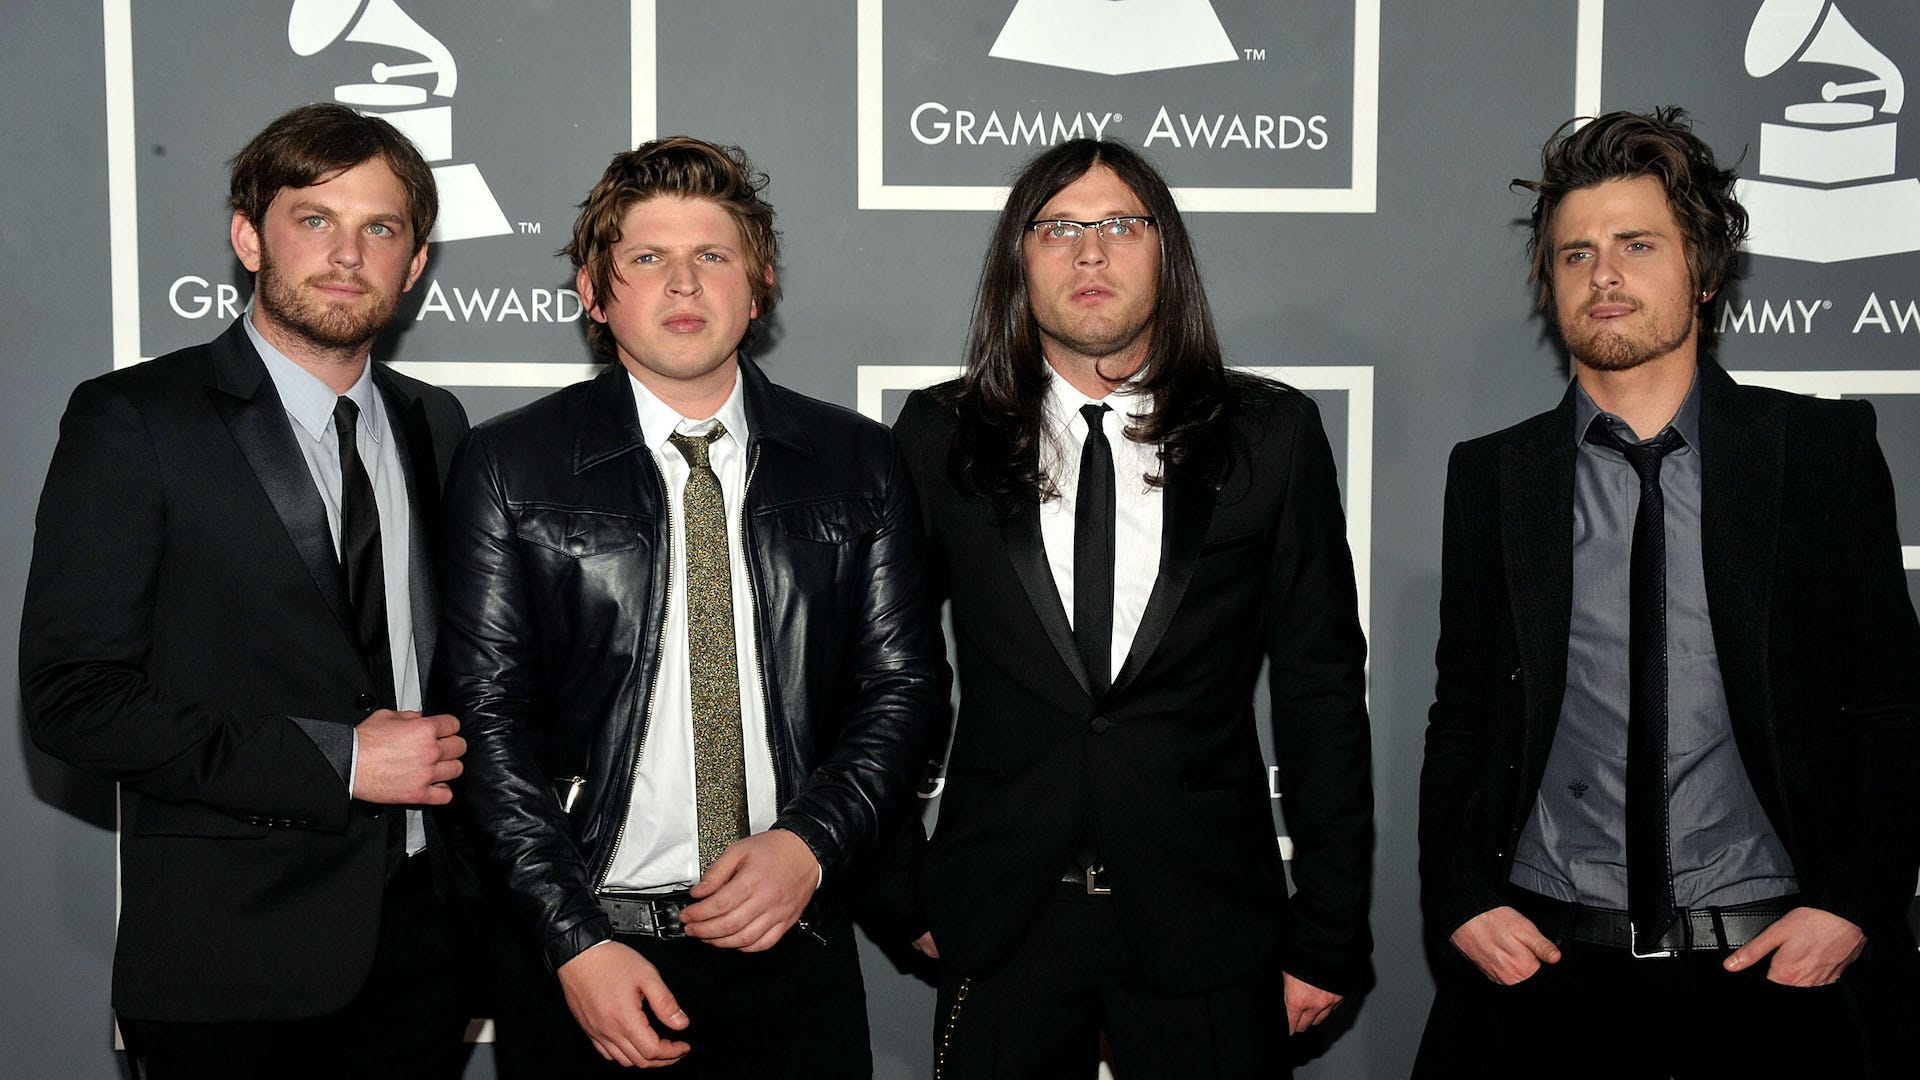 Kings of Leon cancels shows to be with ill mother 'until the time comes to say goodbye'